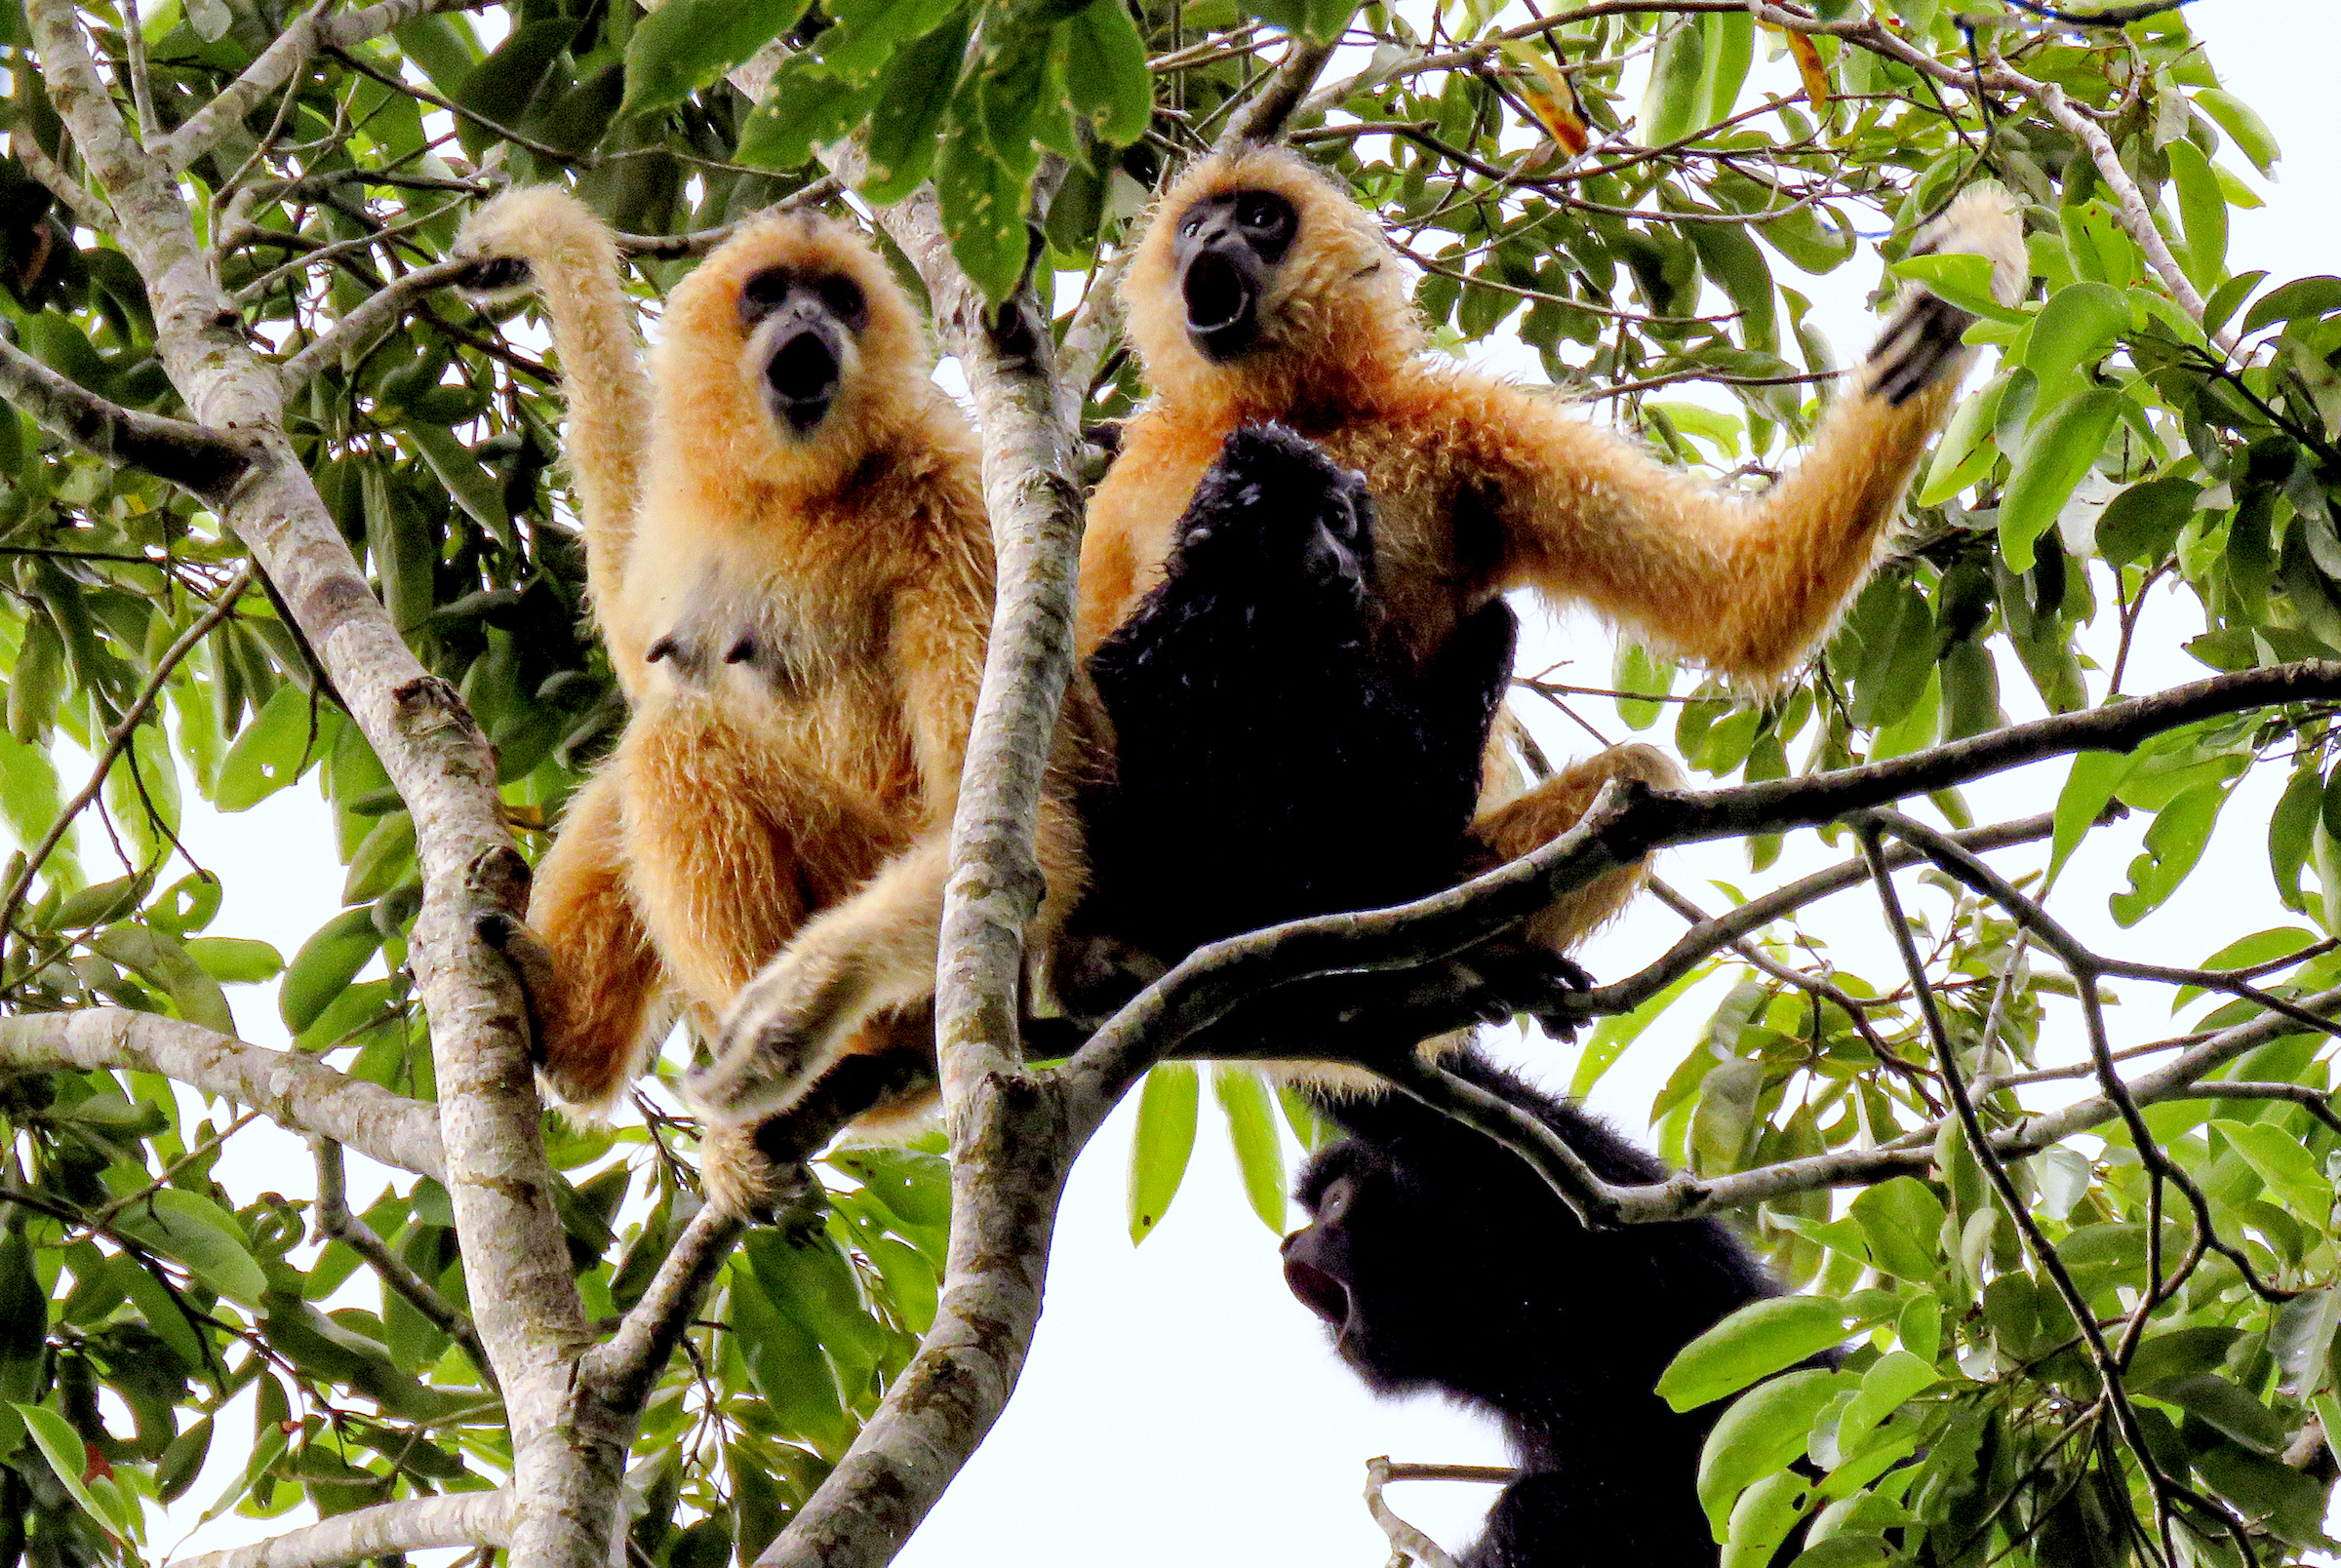 A group of Hainan gibbons sing in the forest of Bawangling National Nature Reserve. The Hainan gibbon's song is one of the key ways scientists differentiate it from other gibbon species. Photograph courtesy of Kadoorie Farm & Botanic Garden